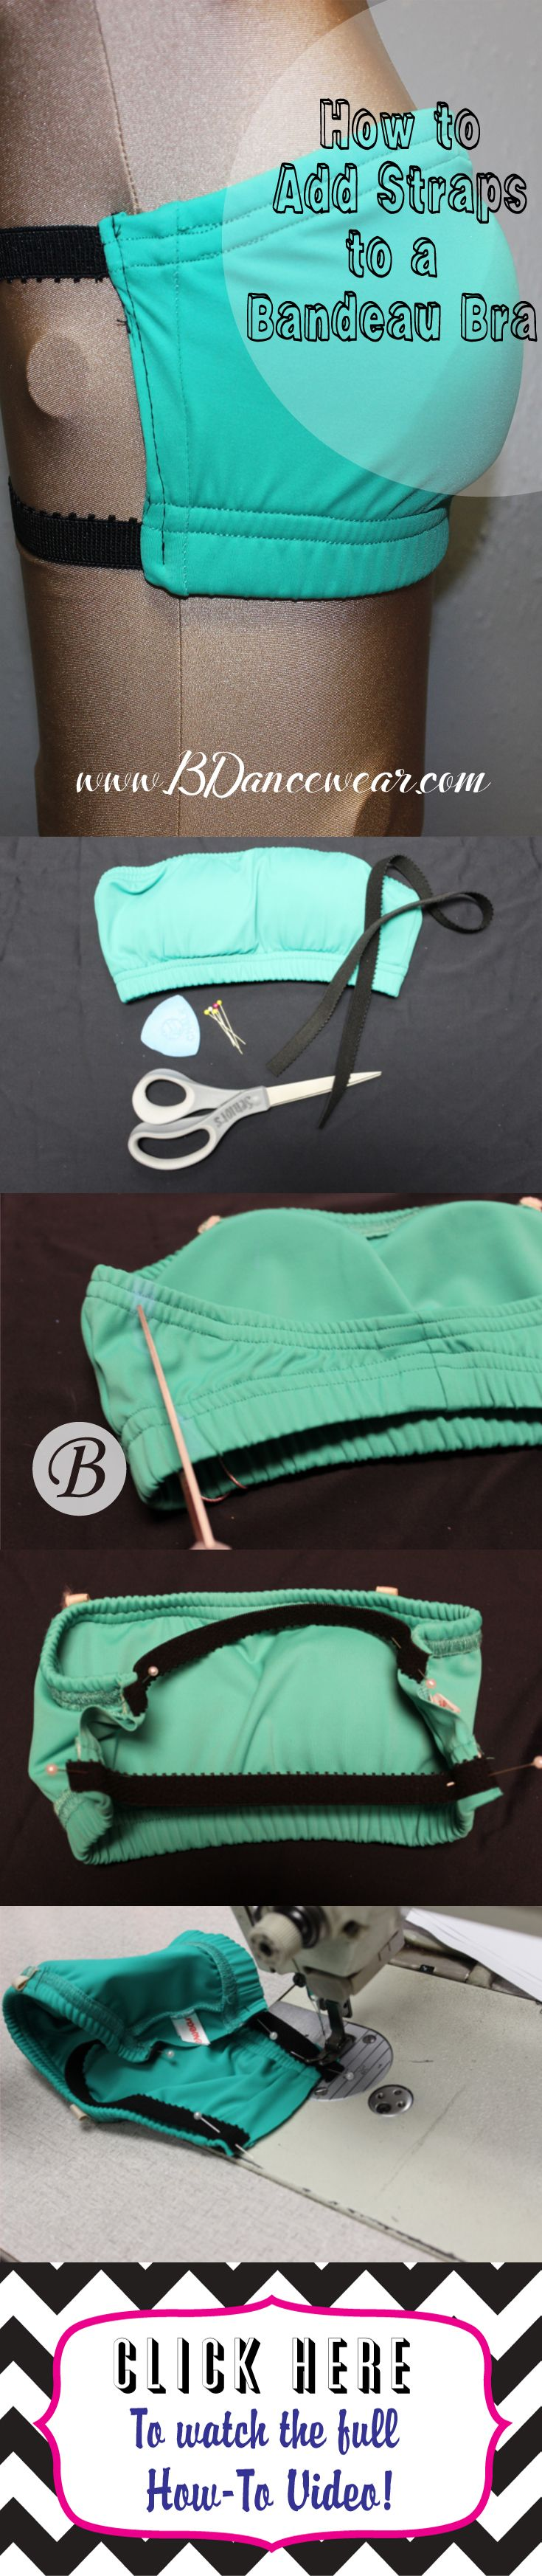 How to Add Straps to a Bandeau Bra